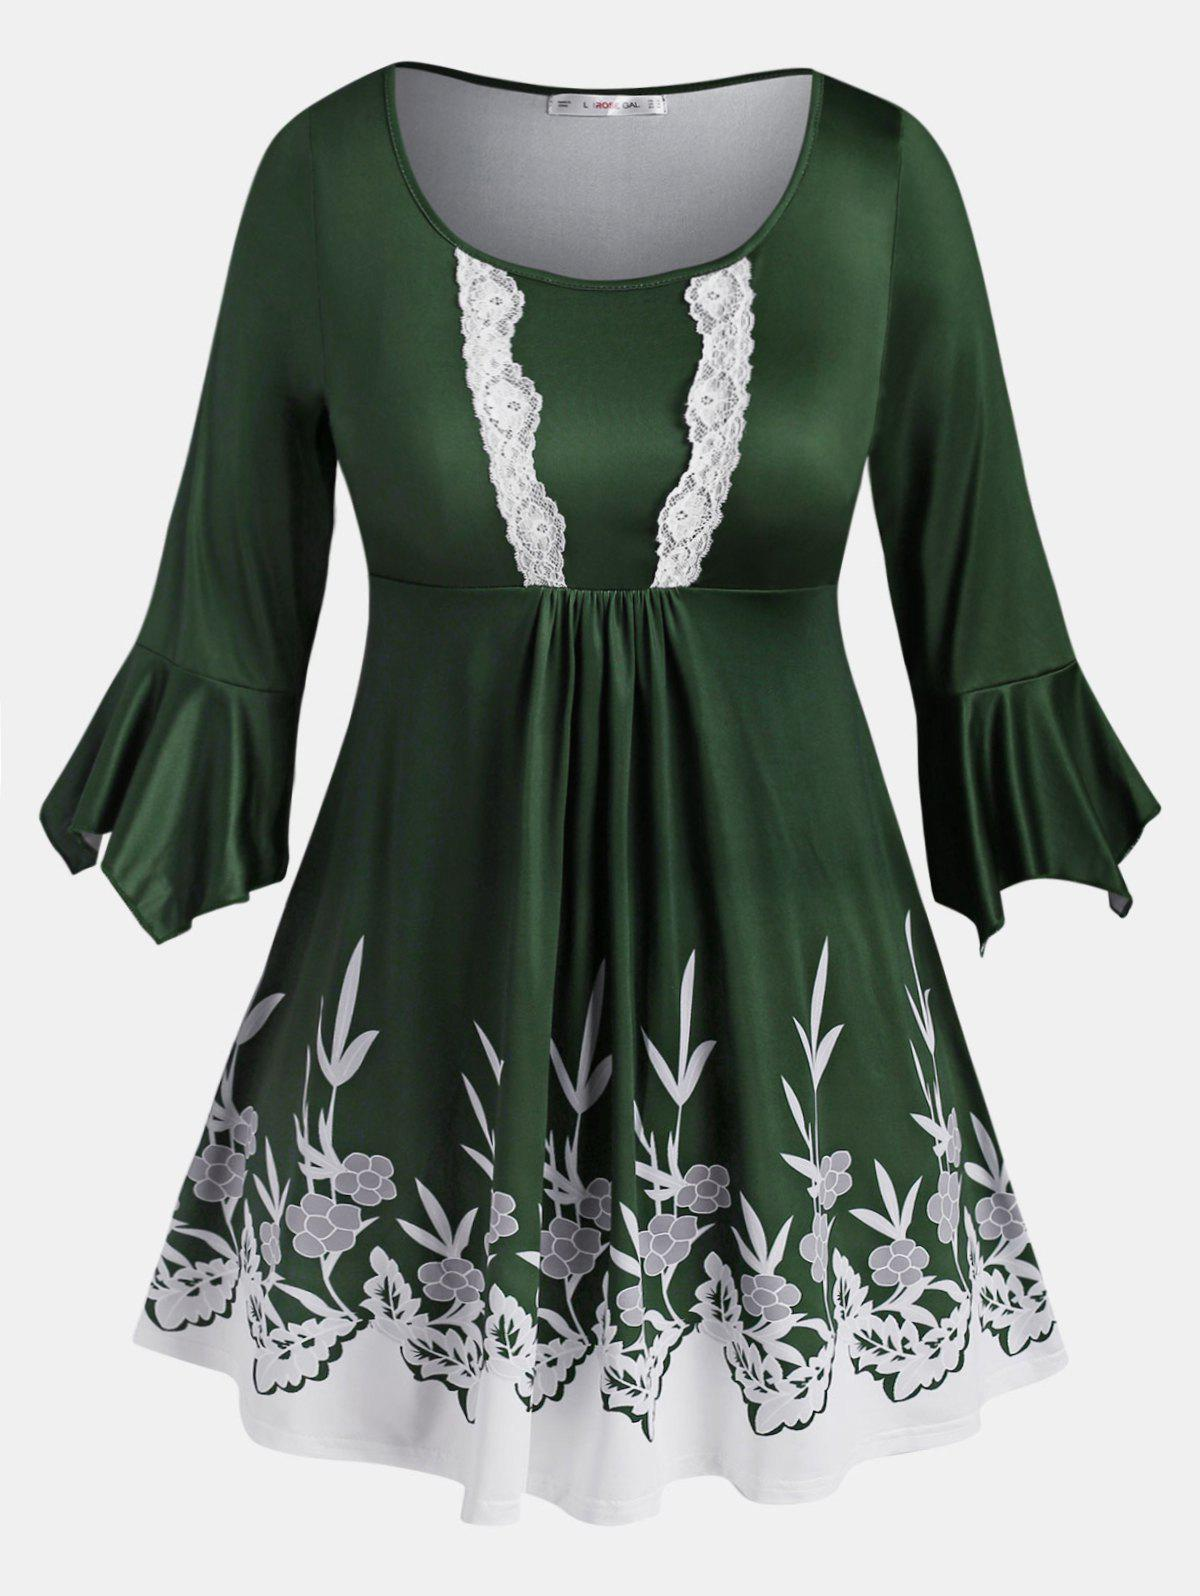 Lace Trim Leaves Floral Flare Sleeve Plus Size Blouse - DEEP GREEN 5X